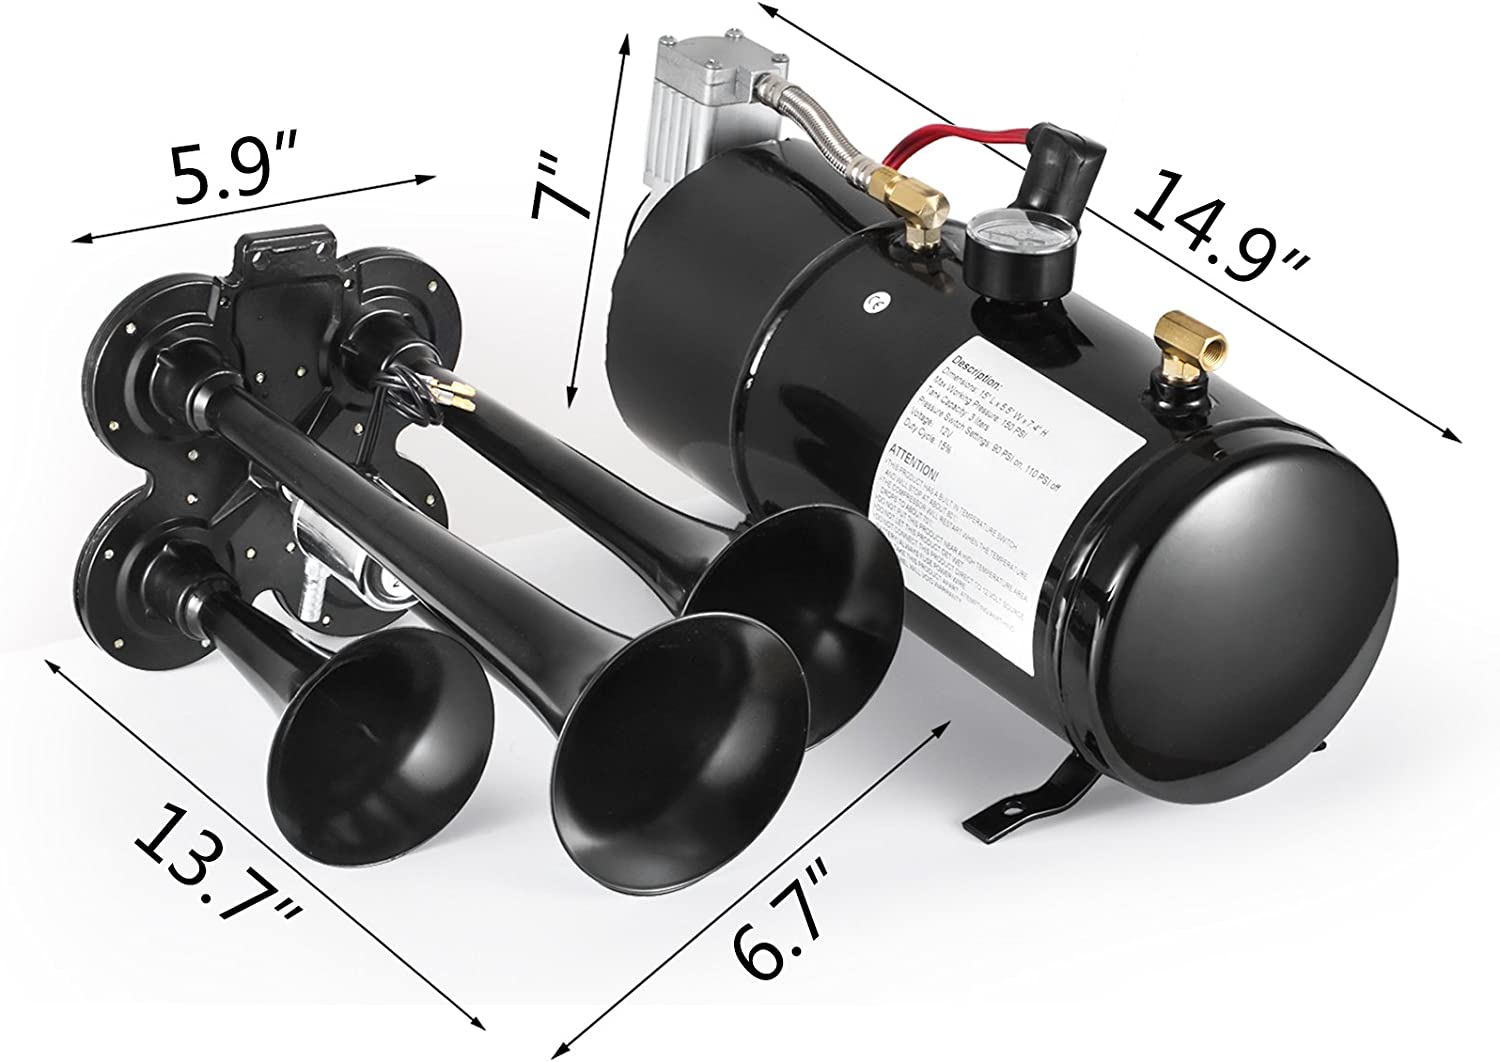 SHZOND Train Horn Kit 4 Trumpet Super Loud Air Horn Compressor Kit with 150 PSI Compressor and 0.8 Gallon Air Tank for Truck Boat or SUV Train Horn kit